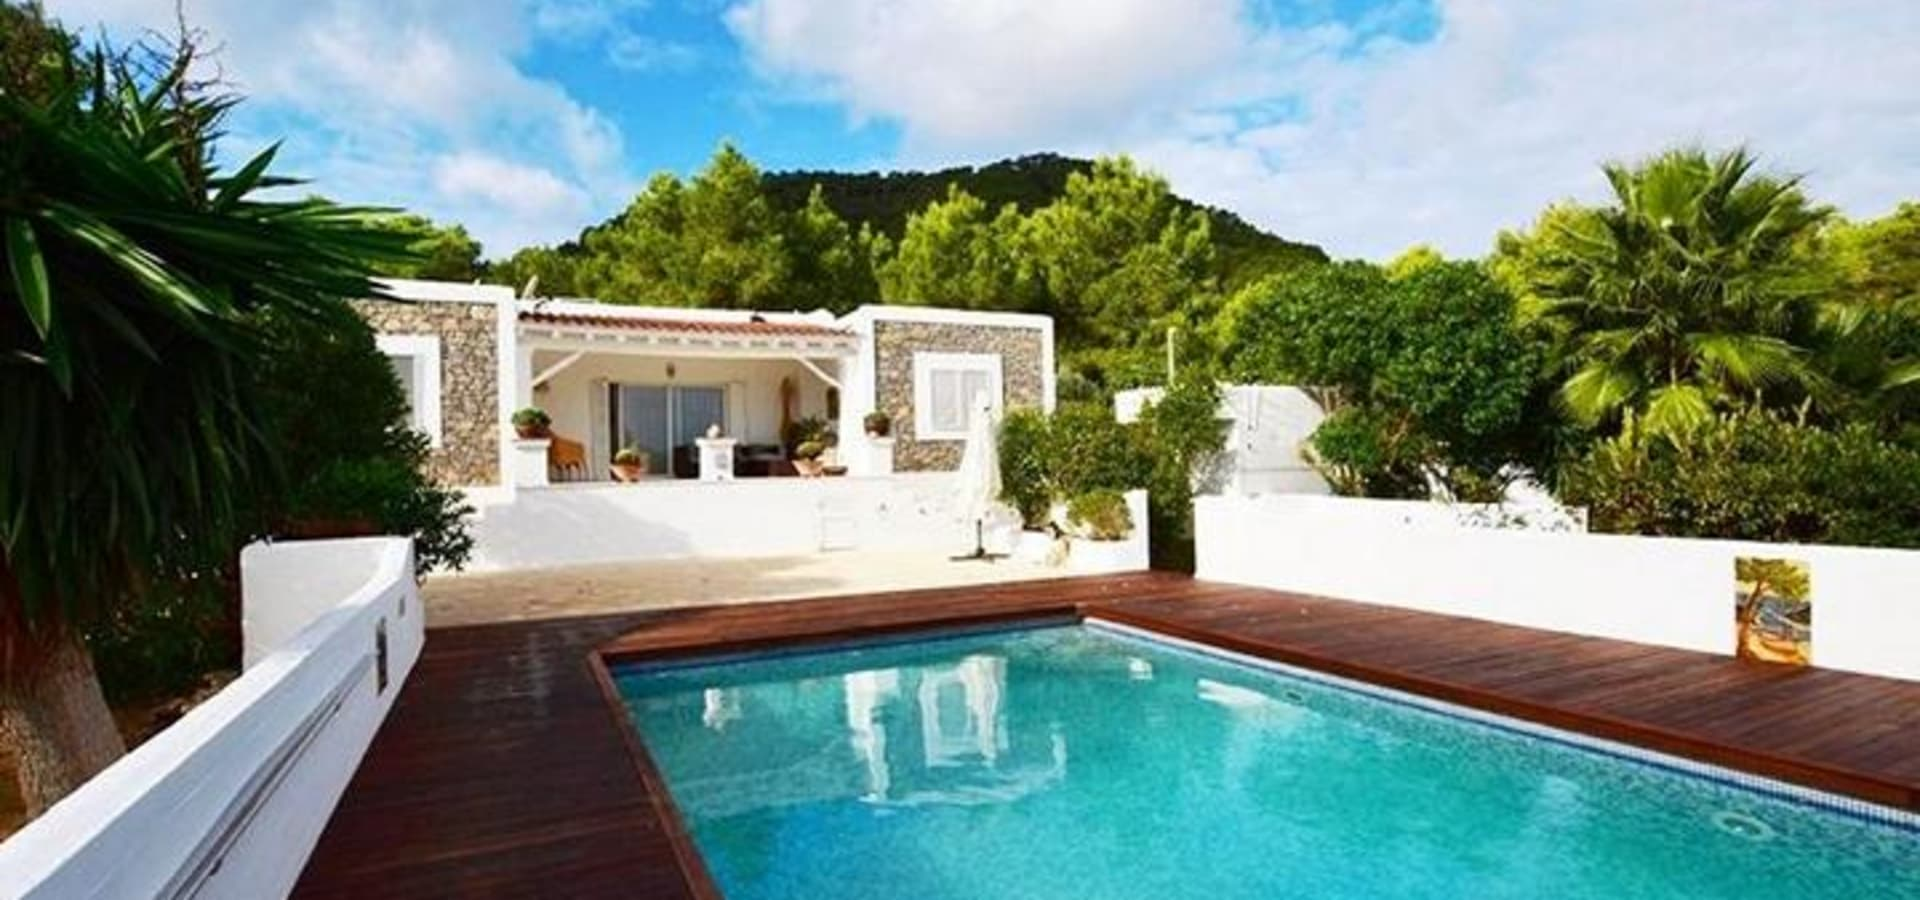 CW Group – Luxury Villas Ibiza